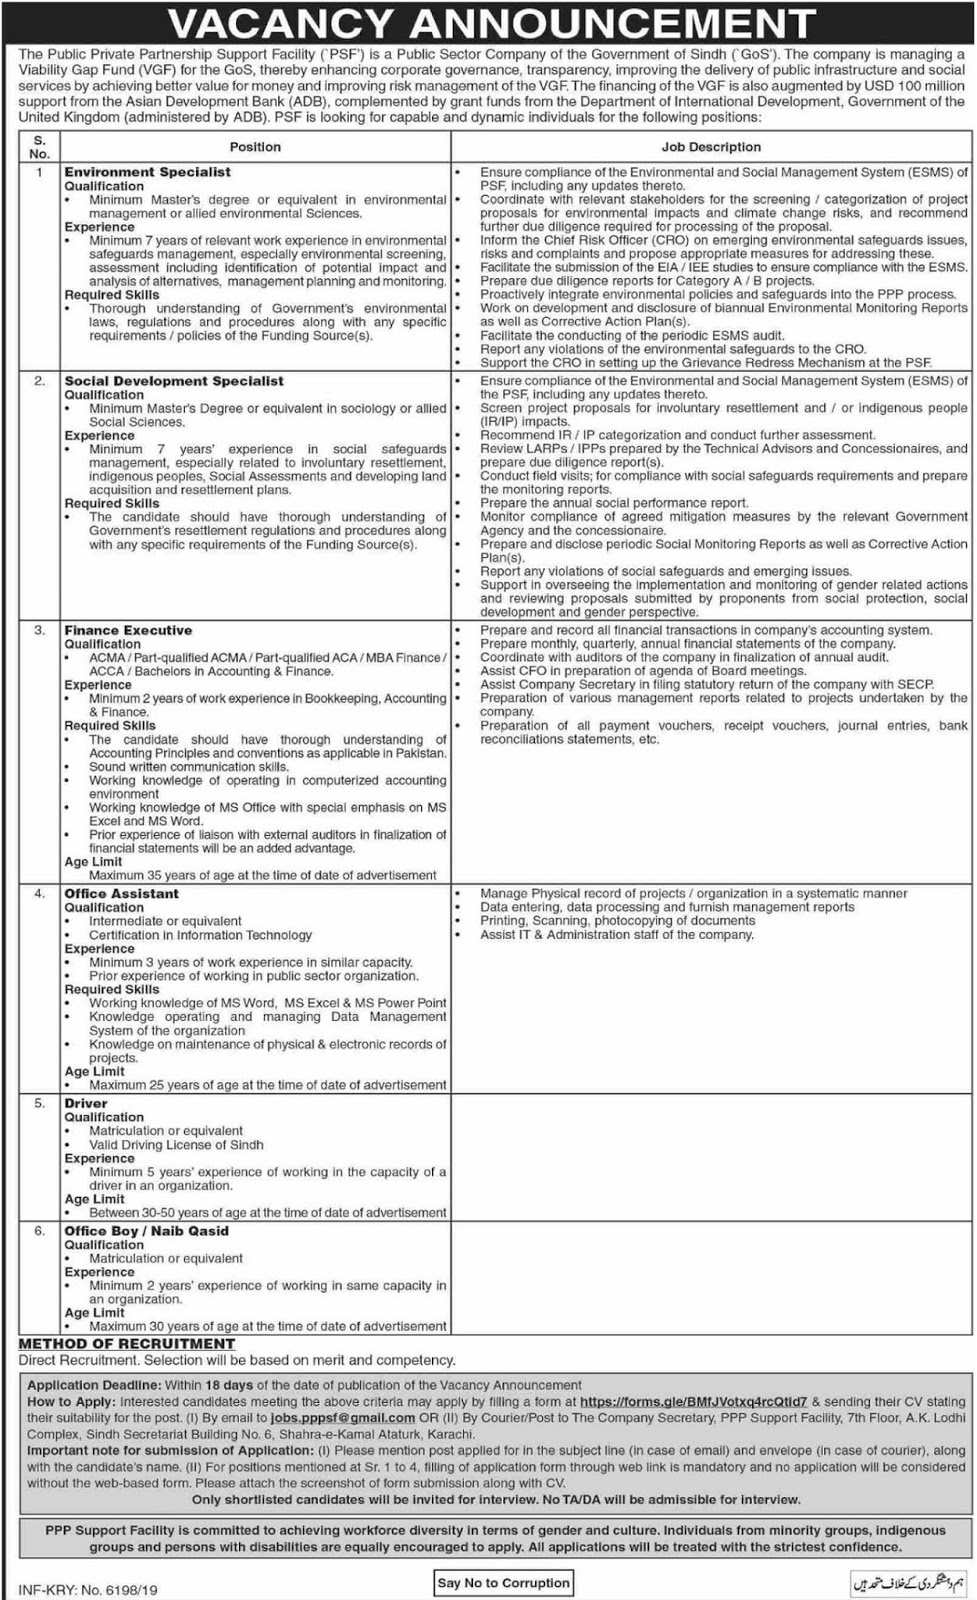 Public Sector Company Government of Sindh Jobs 2019